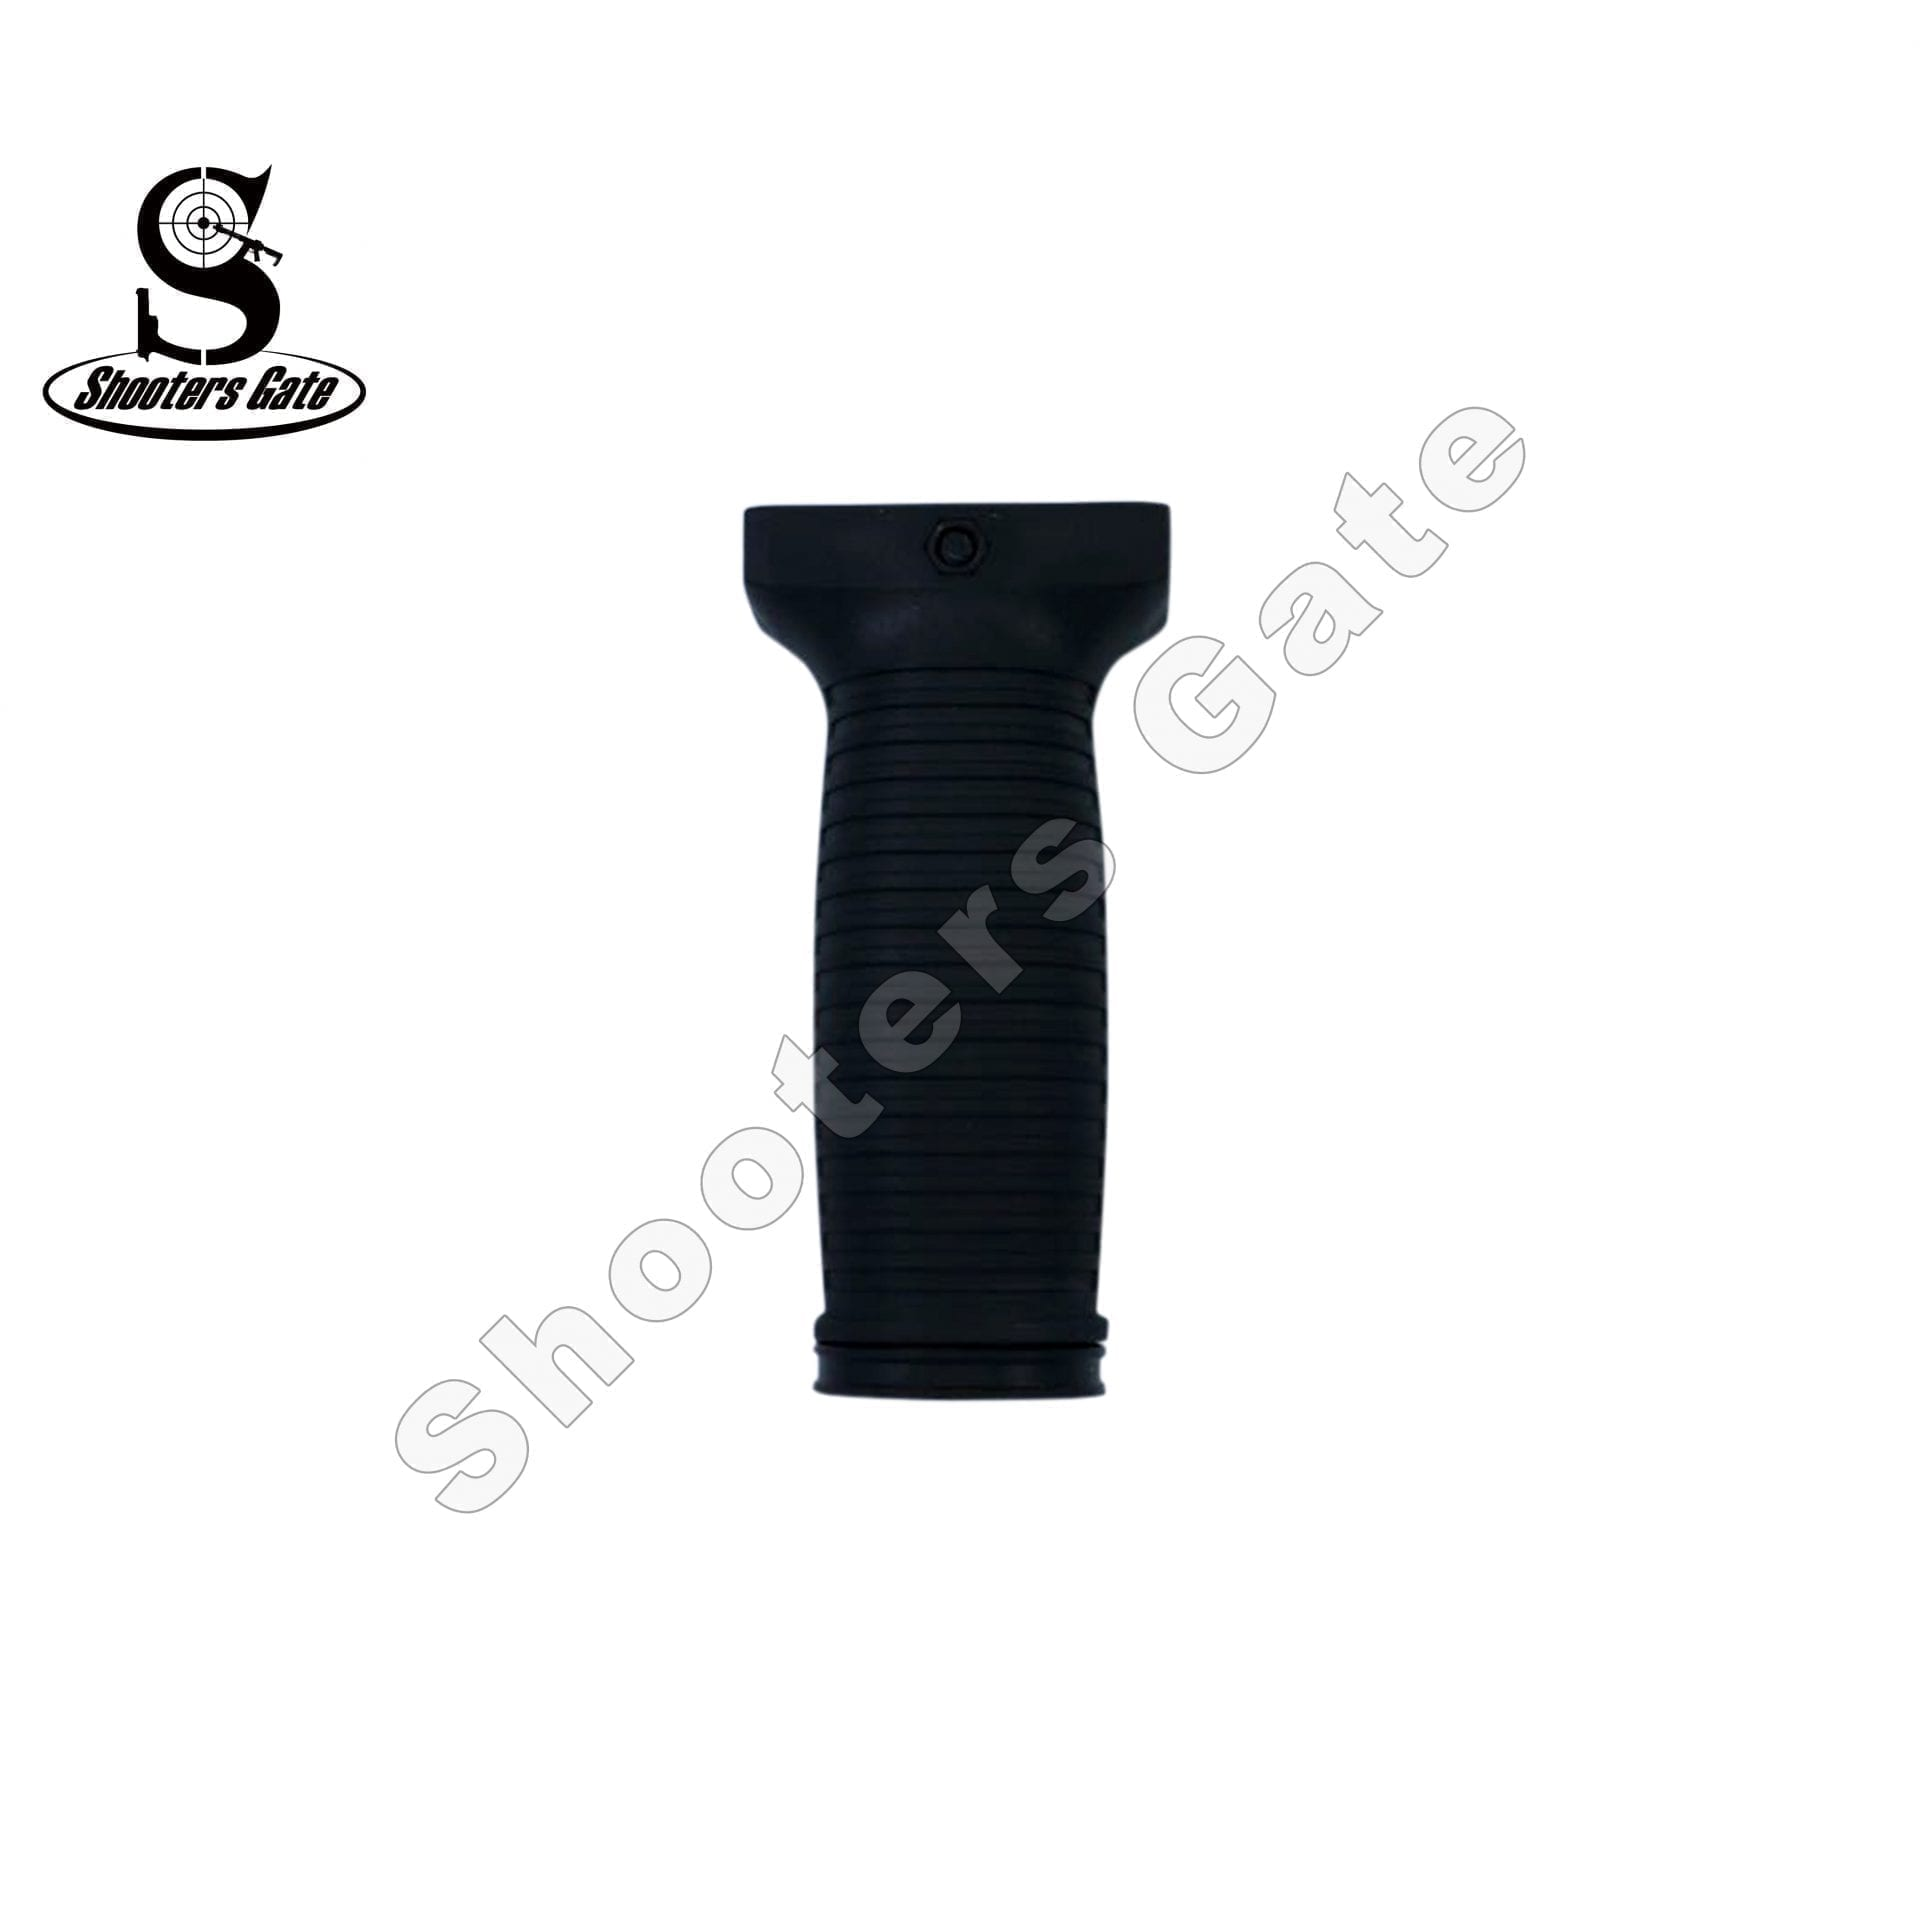 Vertical Rubberized Foregrip Long BLK